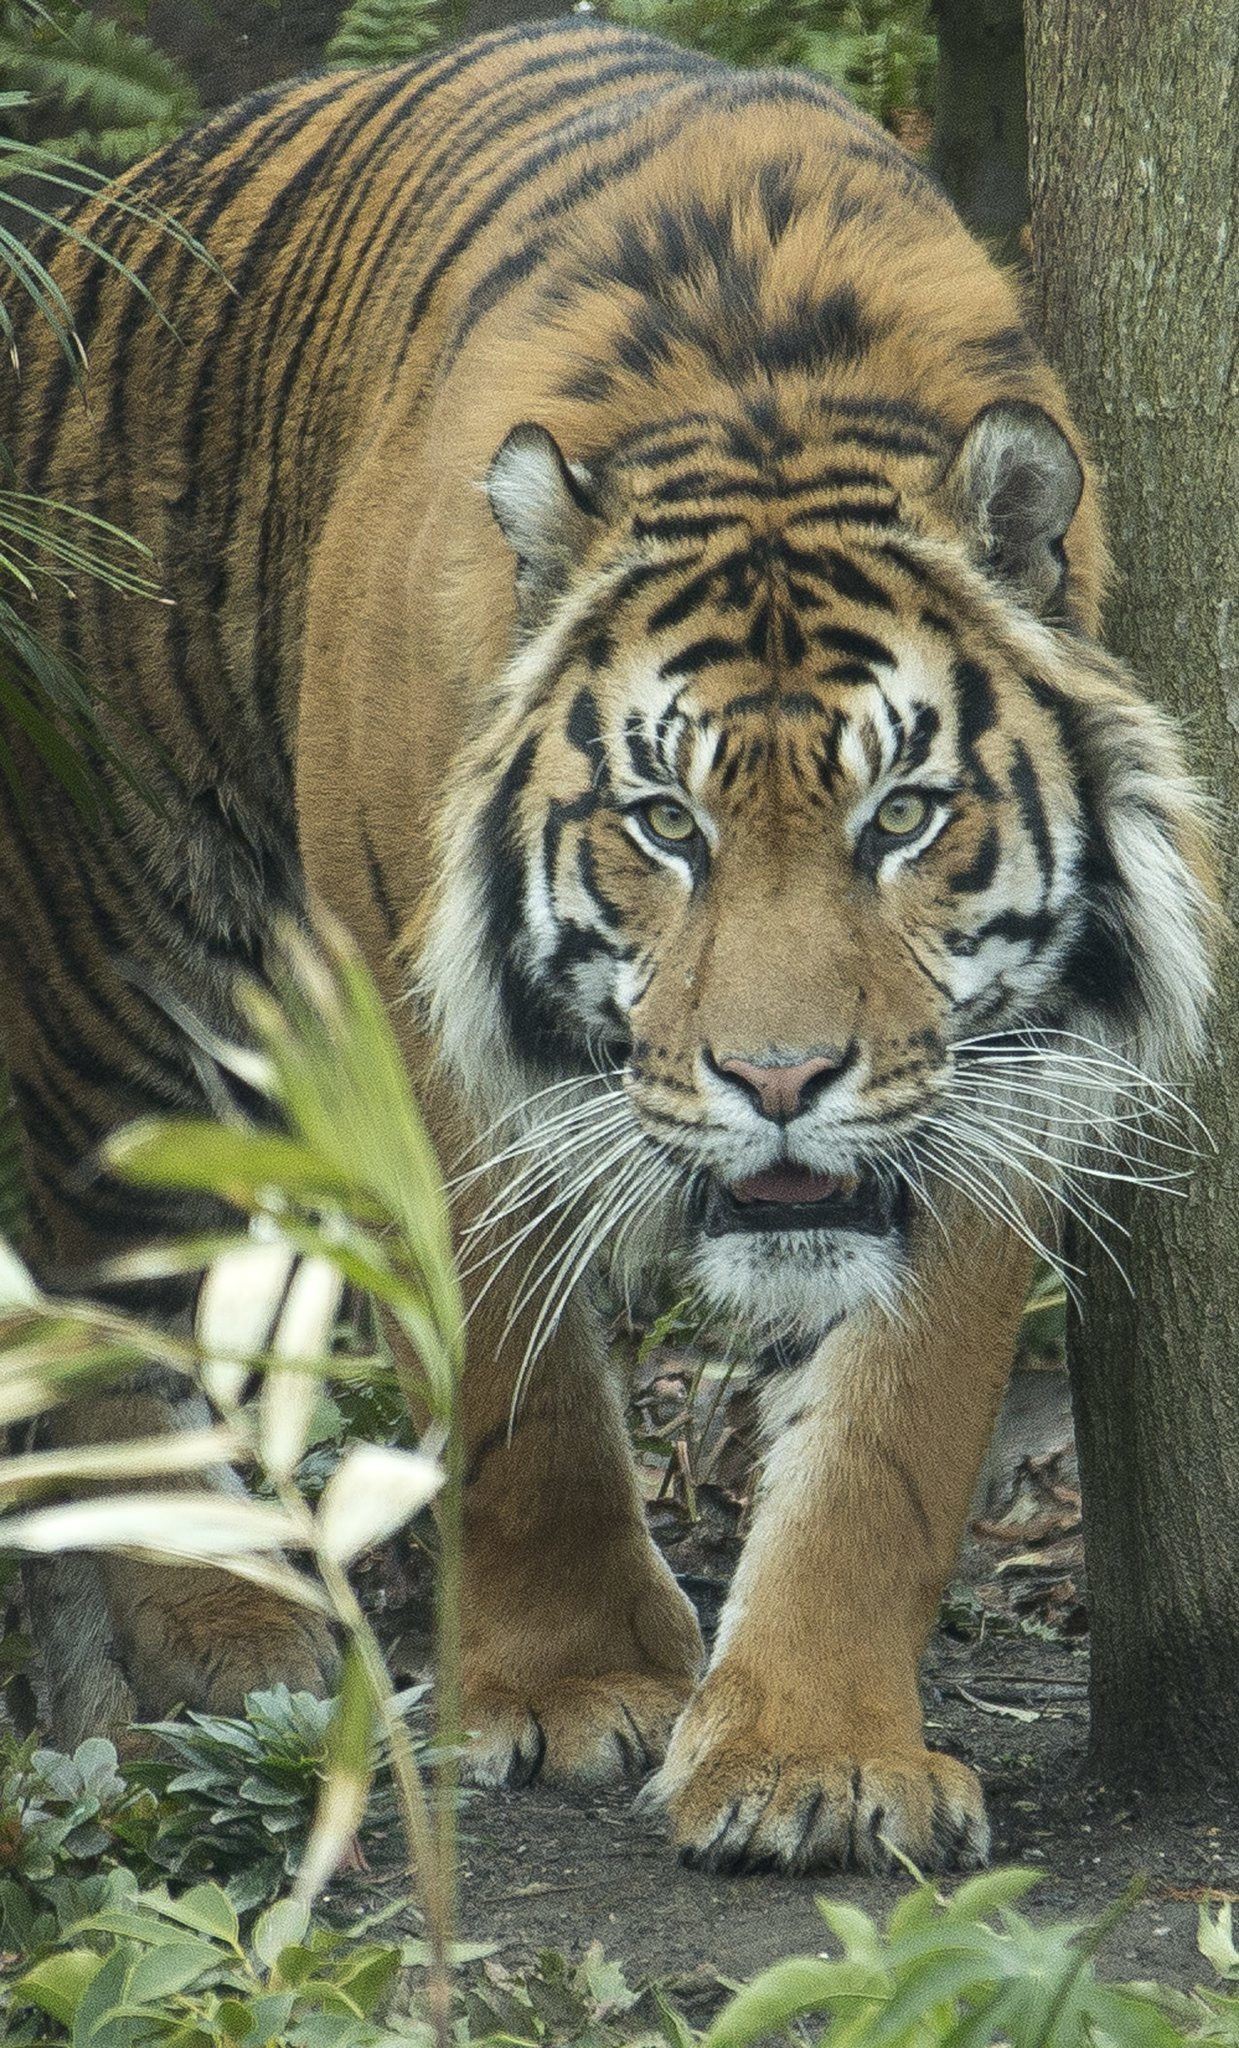 Go deep into Tiger Territory at London Zoo